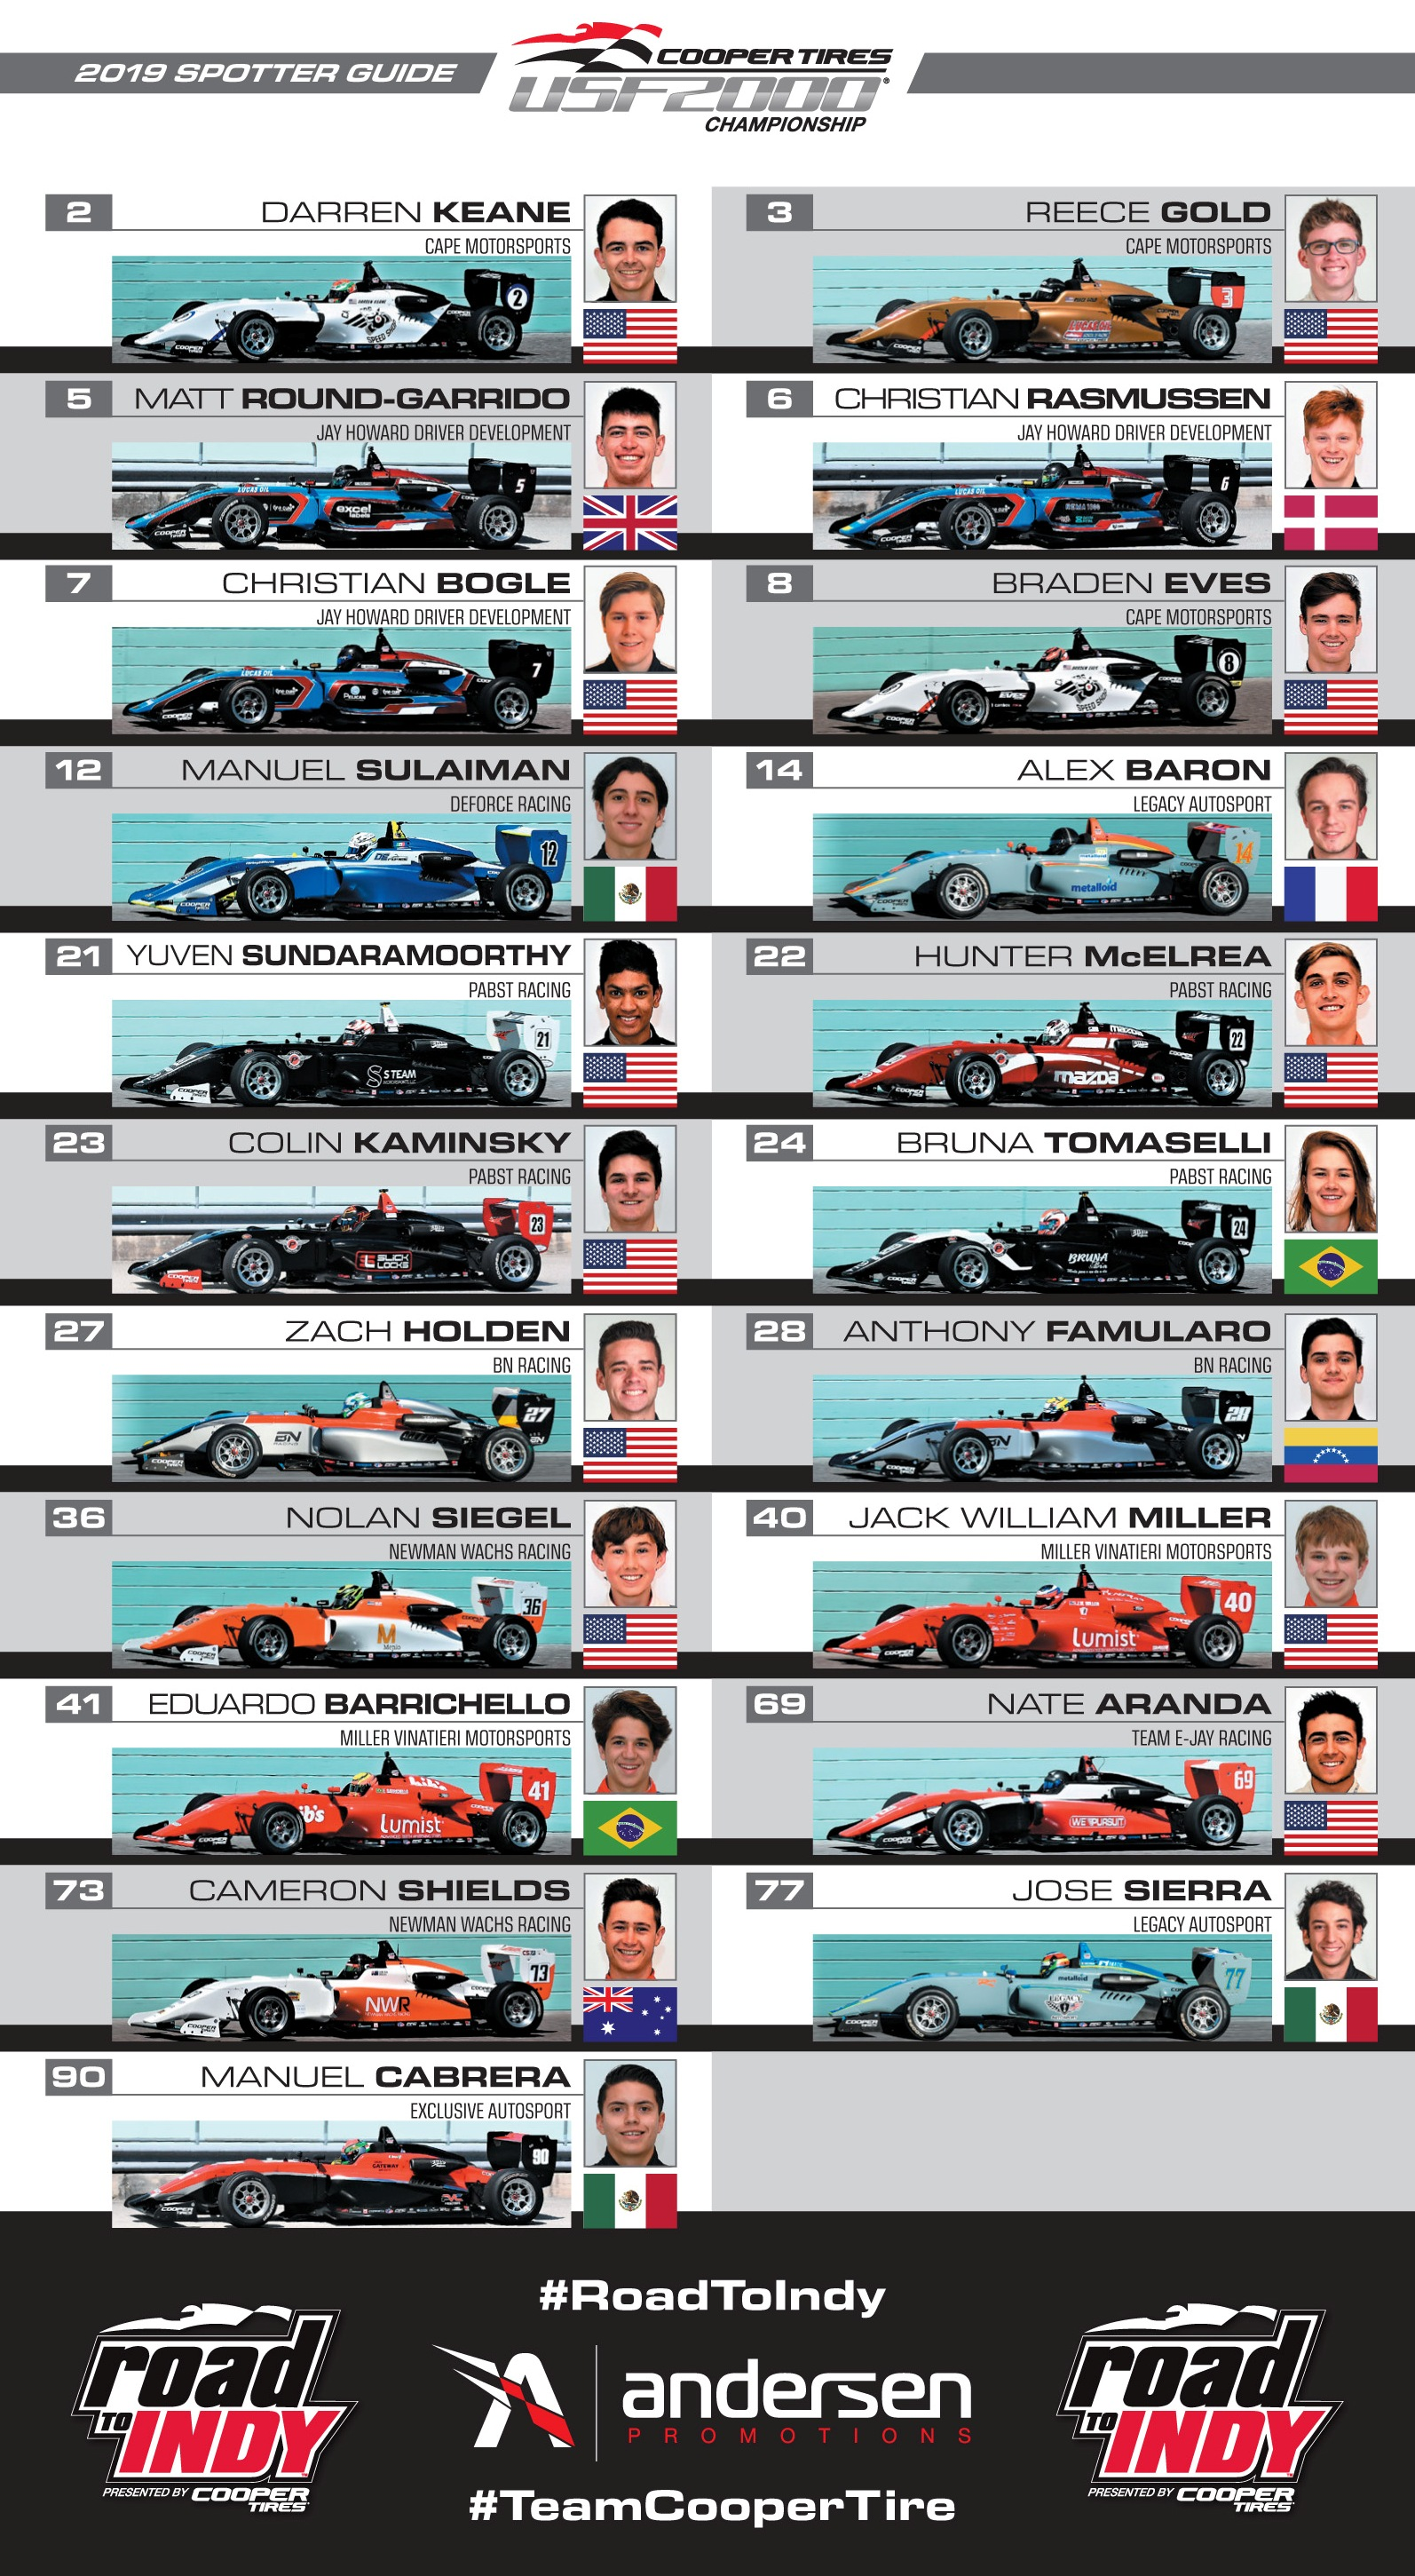 2019_RTI_SPOTTER_GUIDE_MAR17-1